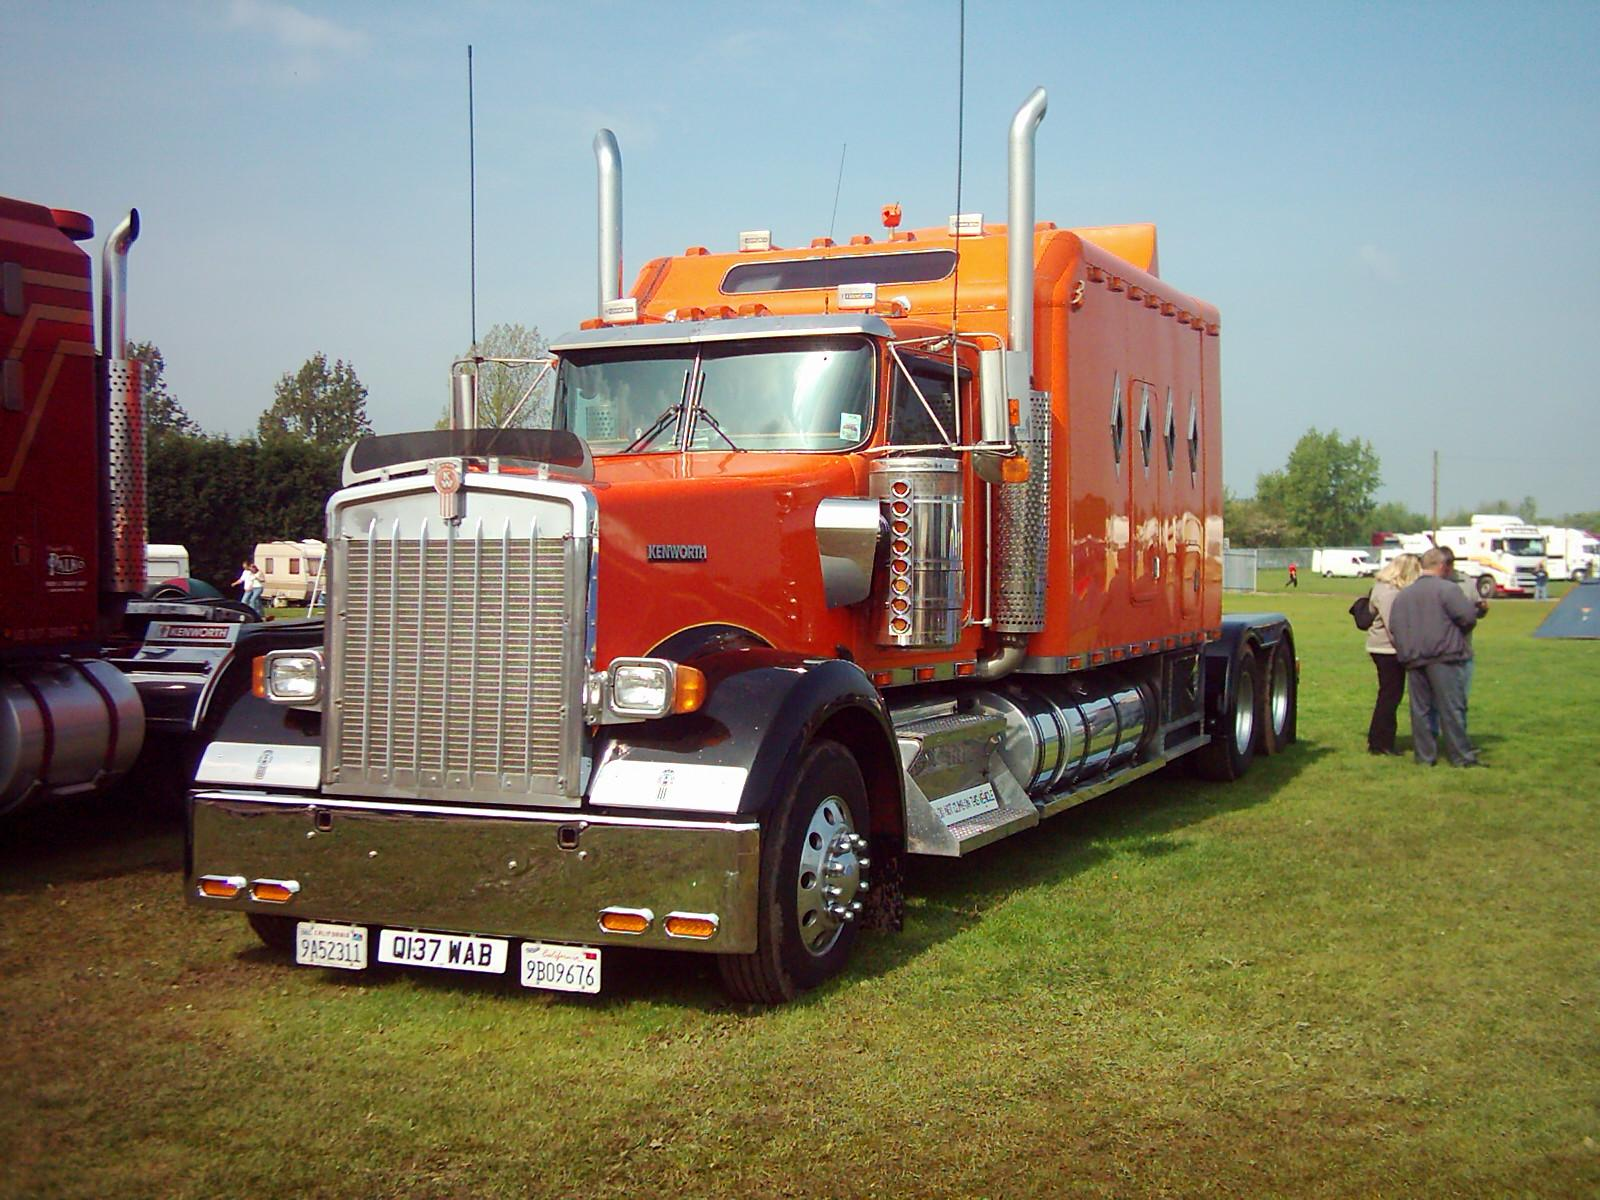 kenworth images - photo #12